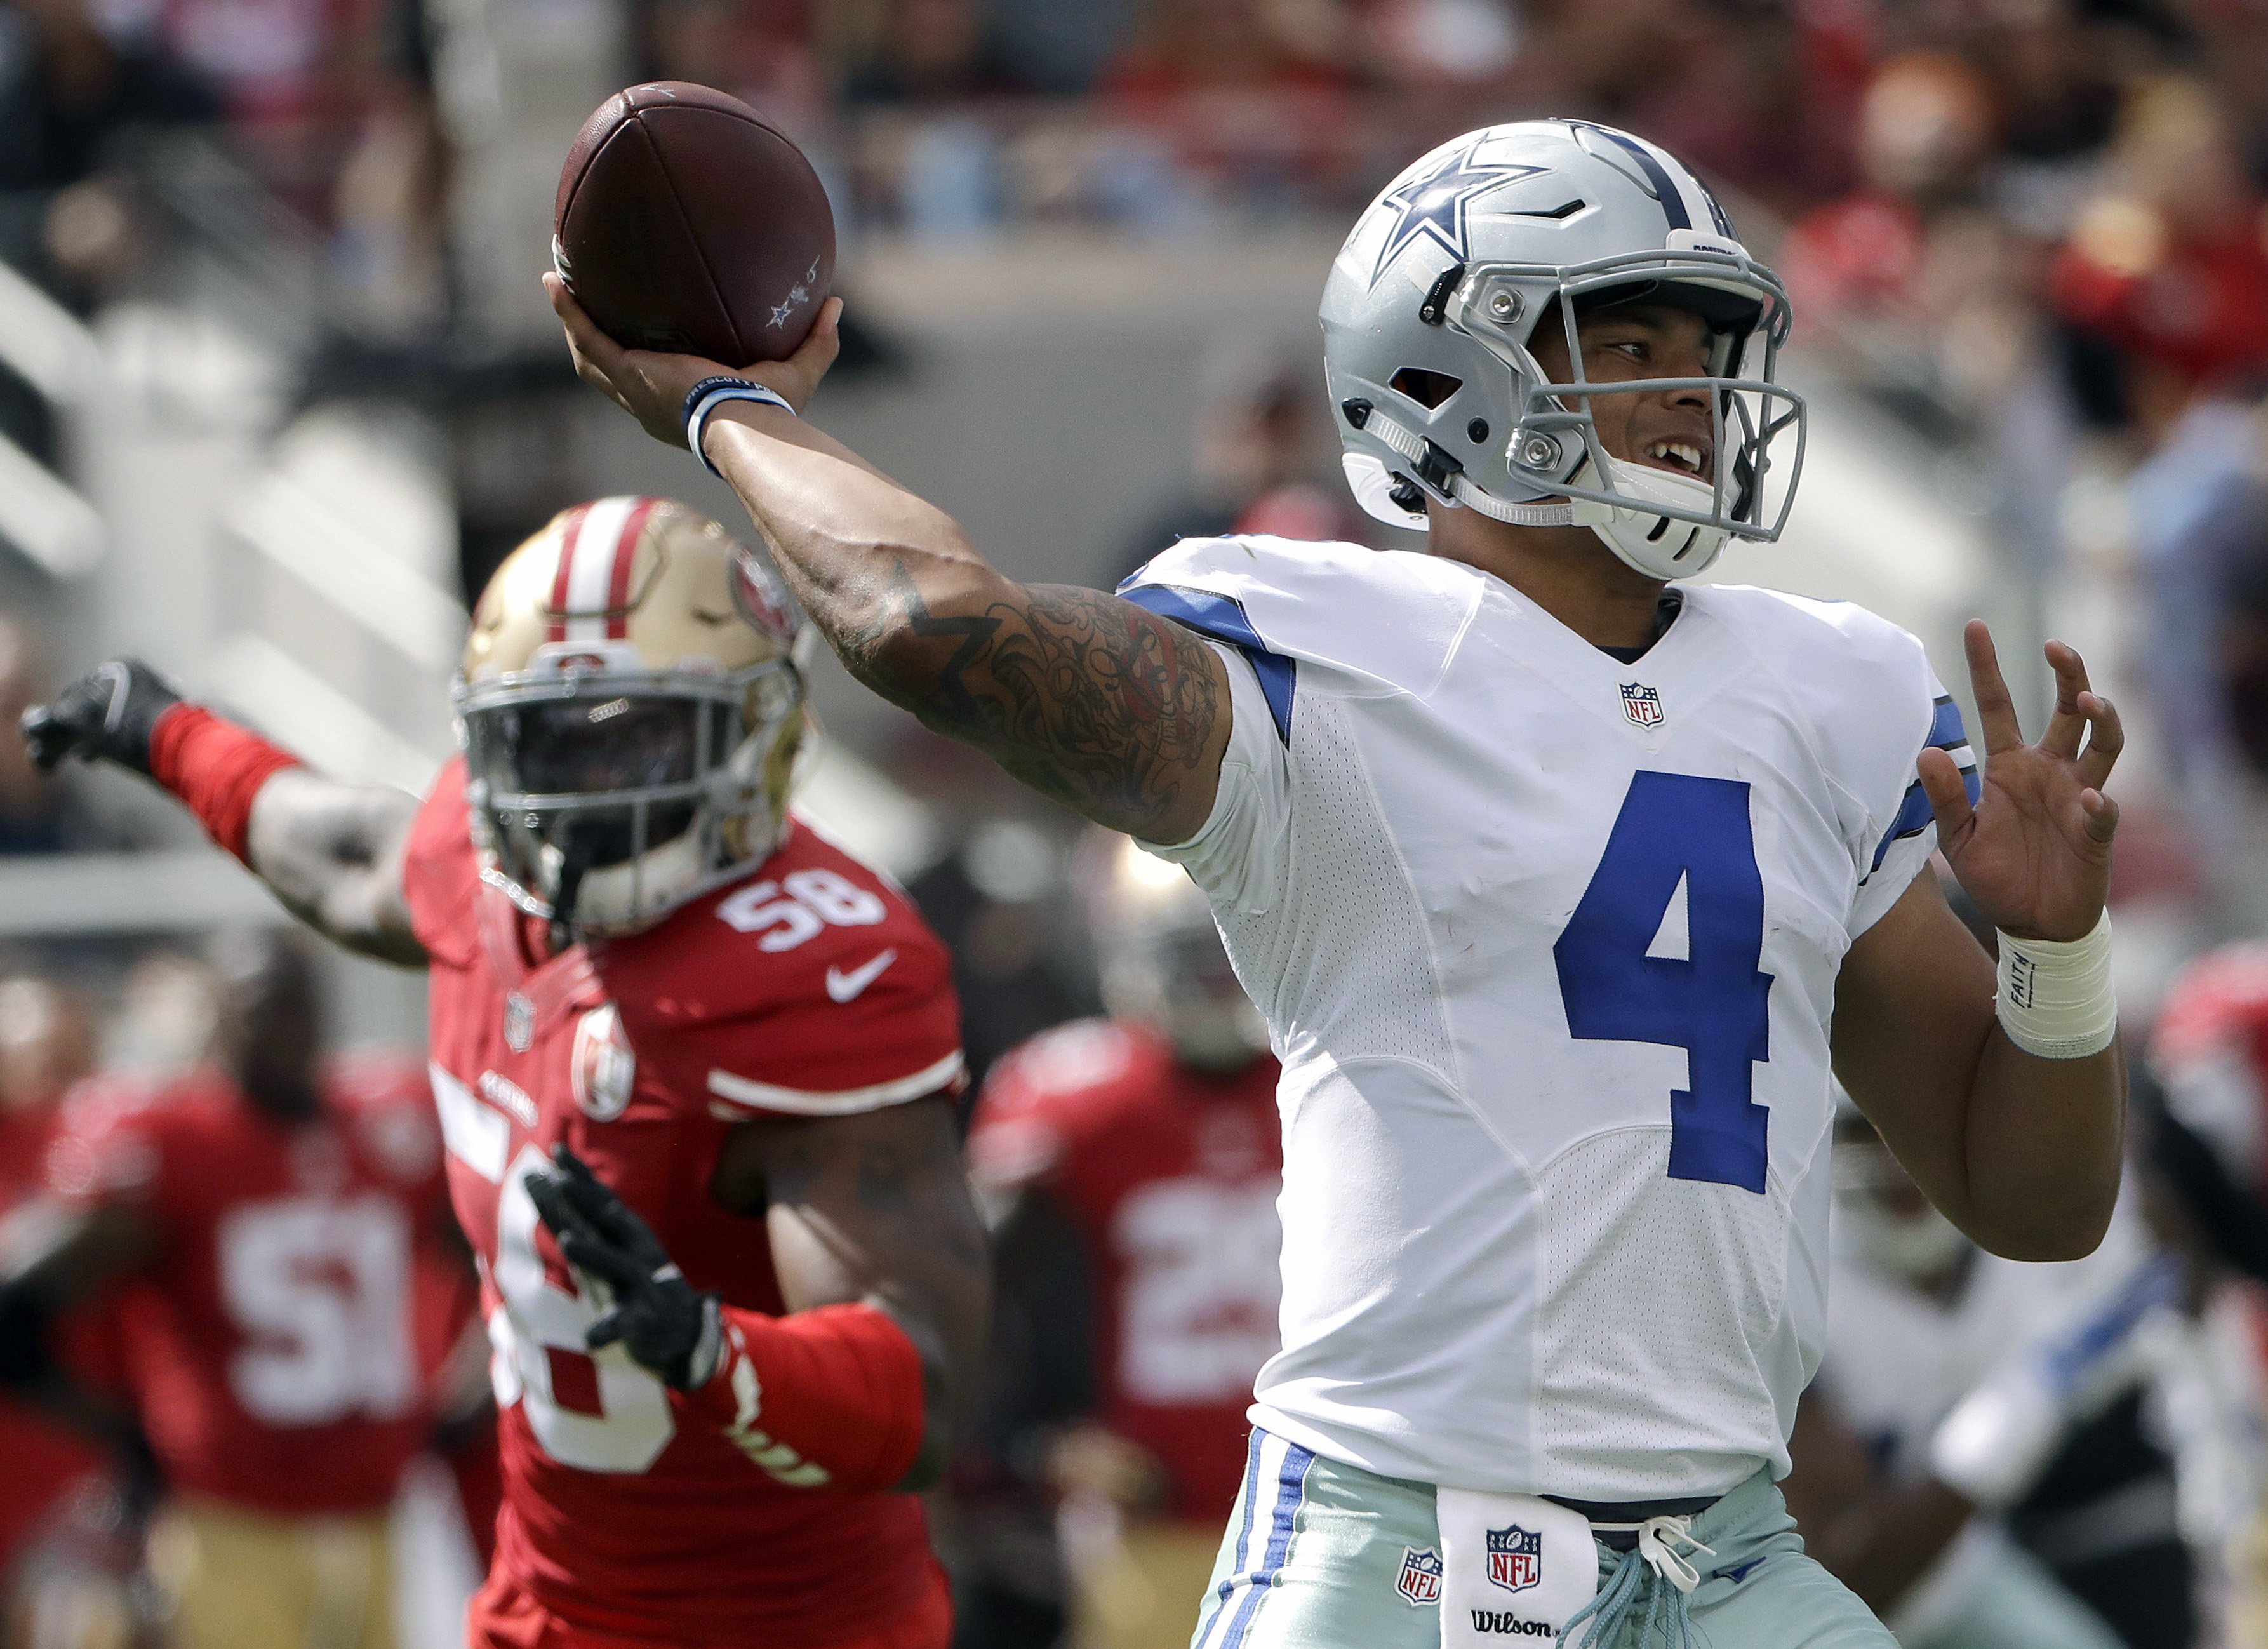 FILE - In this Oct. 2, 2016, file photo, Dallas Cowboys quarterback Dak Prescott (4) passes against the San Francisco 49ers during the first half of an NFL football game in Santa Clara, Calif. The still-perfect Prescott, with a rookie-record 131 passes wi